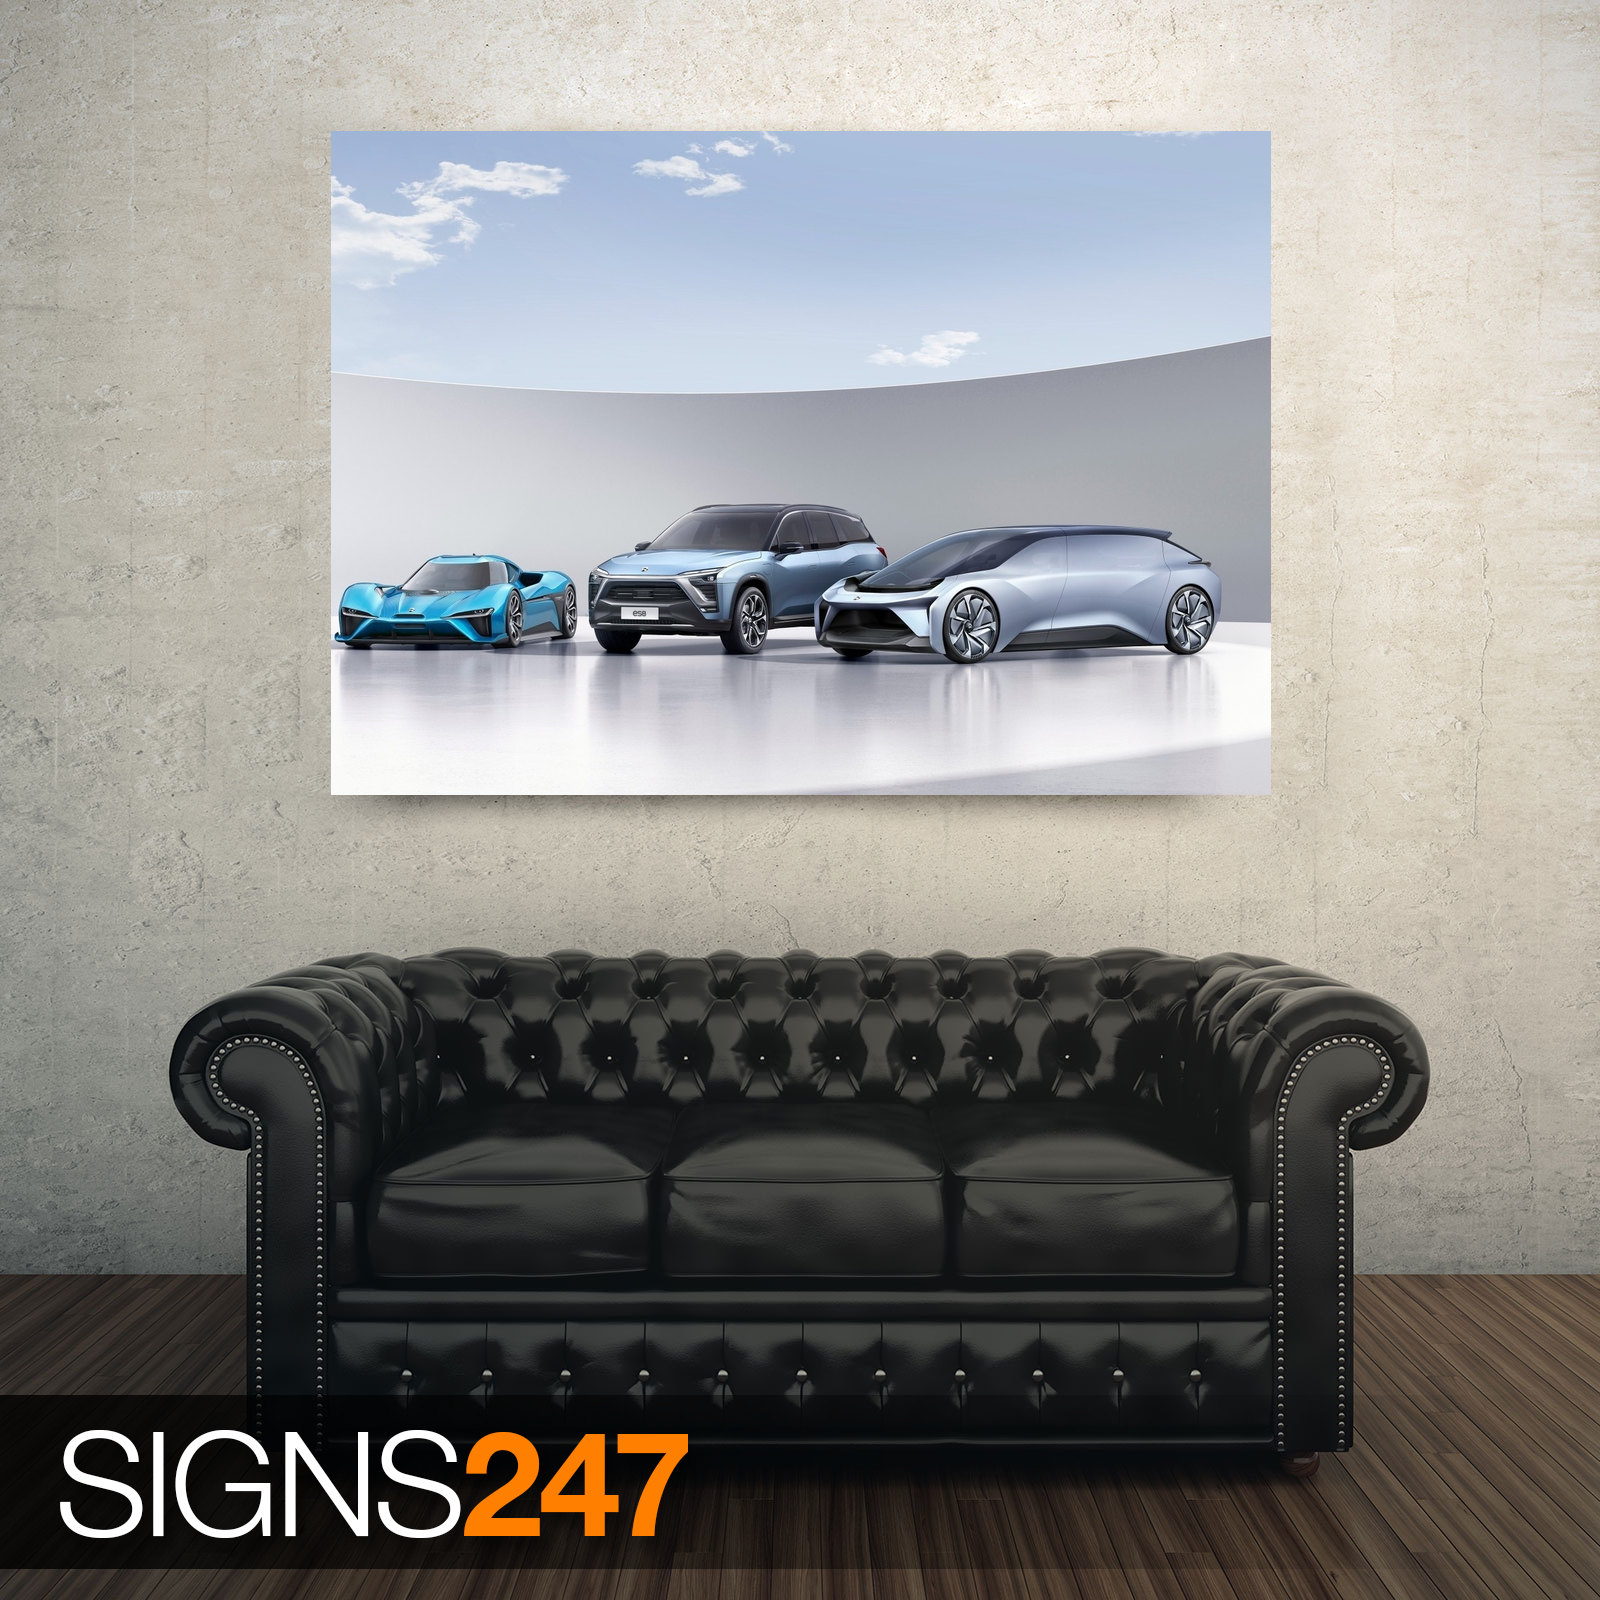 NEXTEV-NIO-ELECTRIC-CARS-AD748-CAR-POSTER-Photo-Poster-Print-Art-All-Sizes